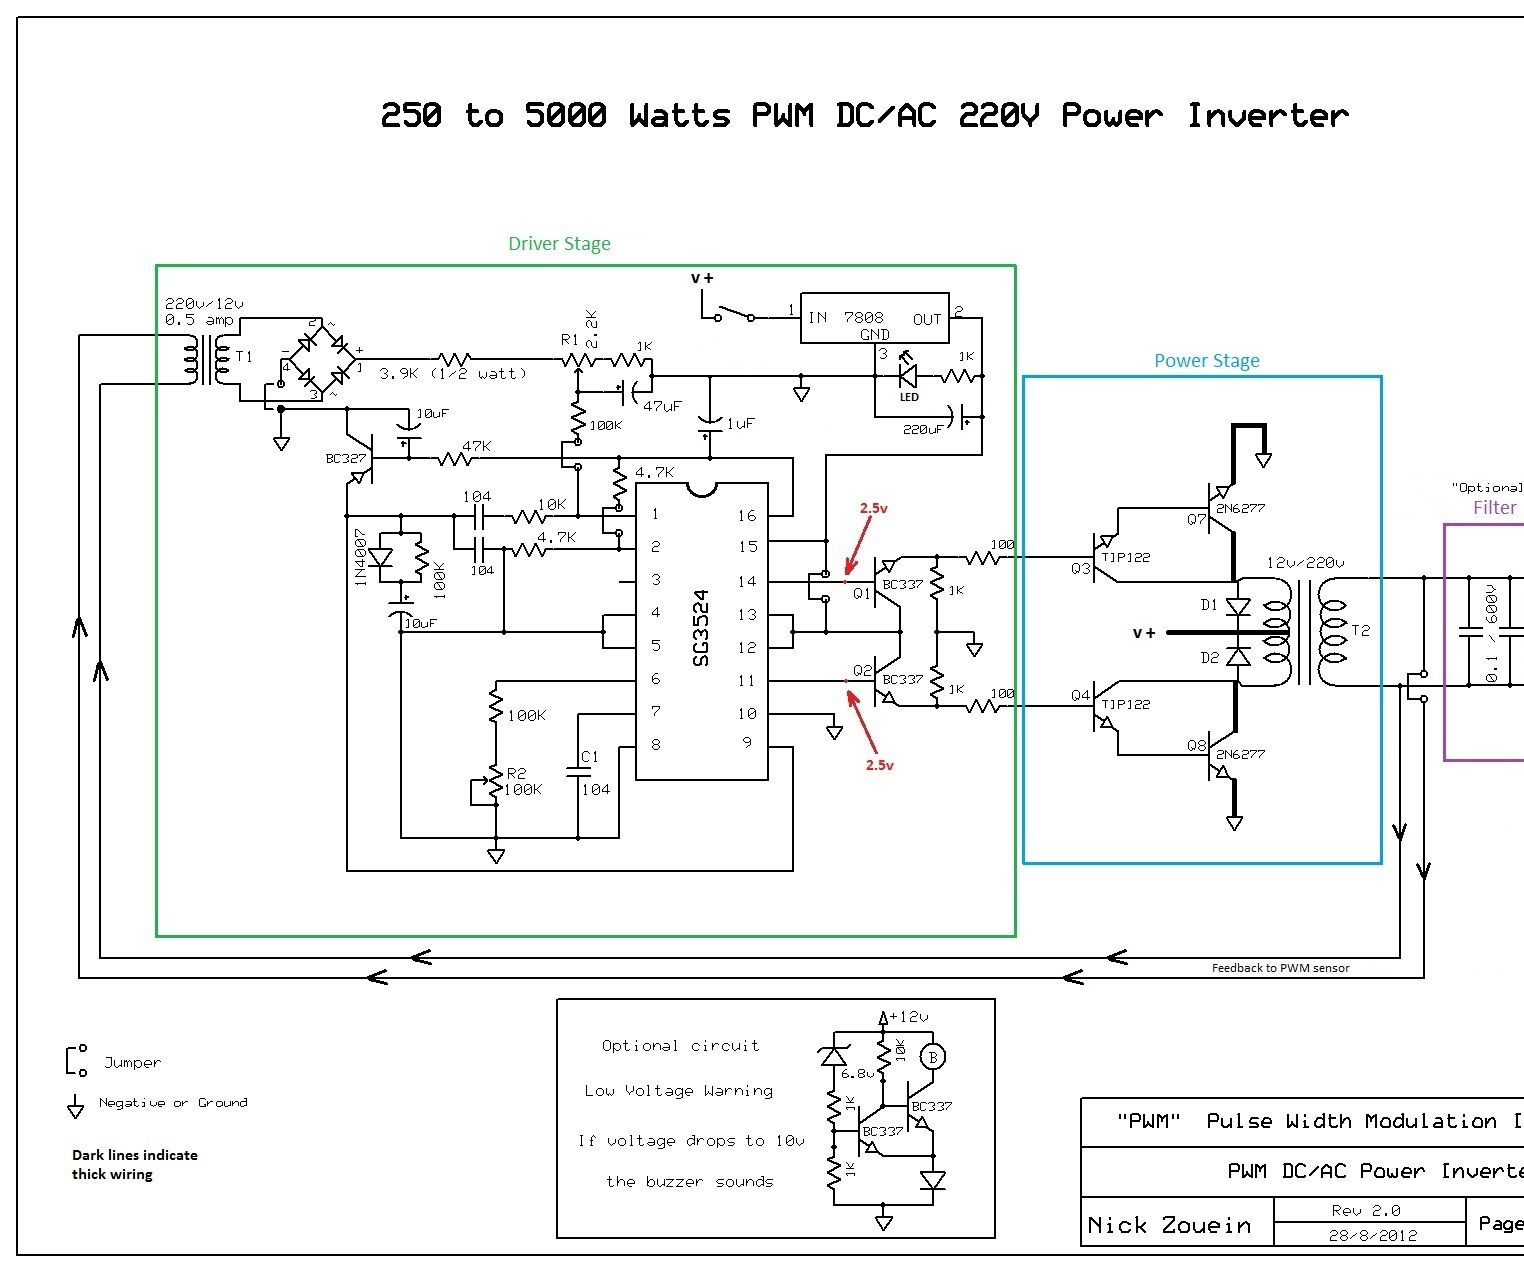 small resolution of 250 to 5000 watts pwm dc ac 220v power inverter